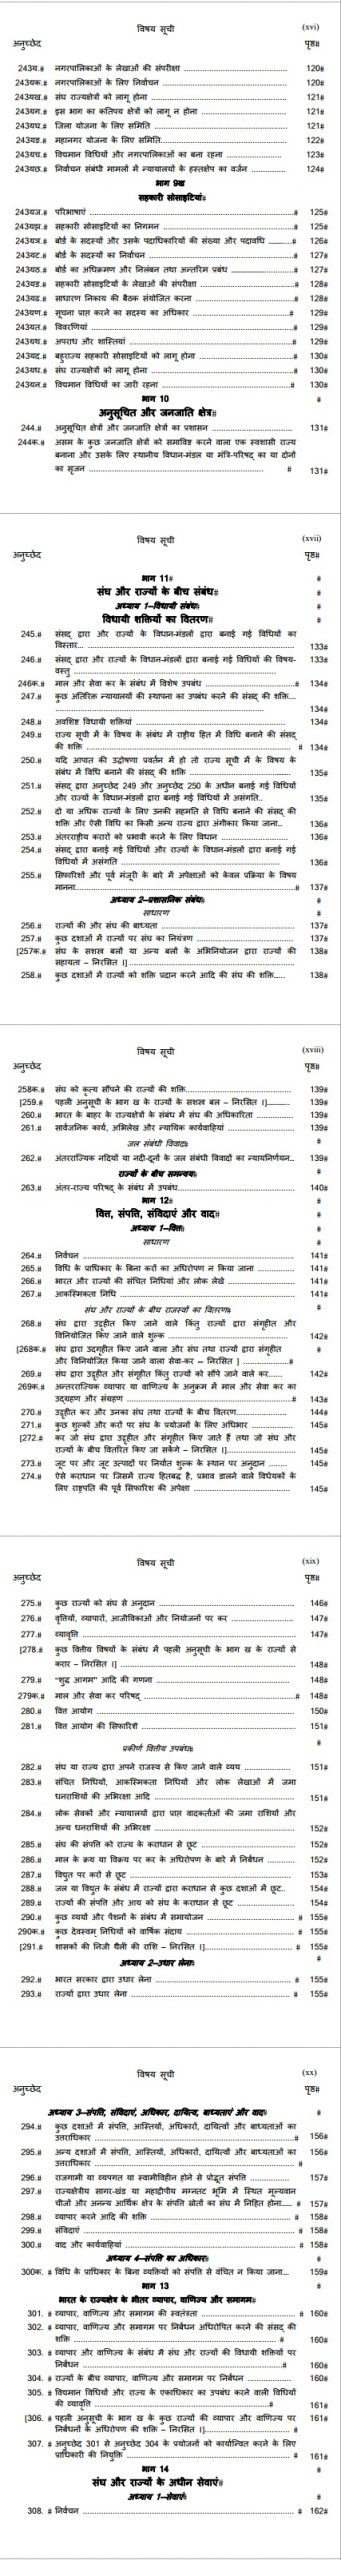 Articles 234 to 308 in Hindi